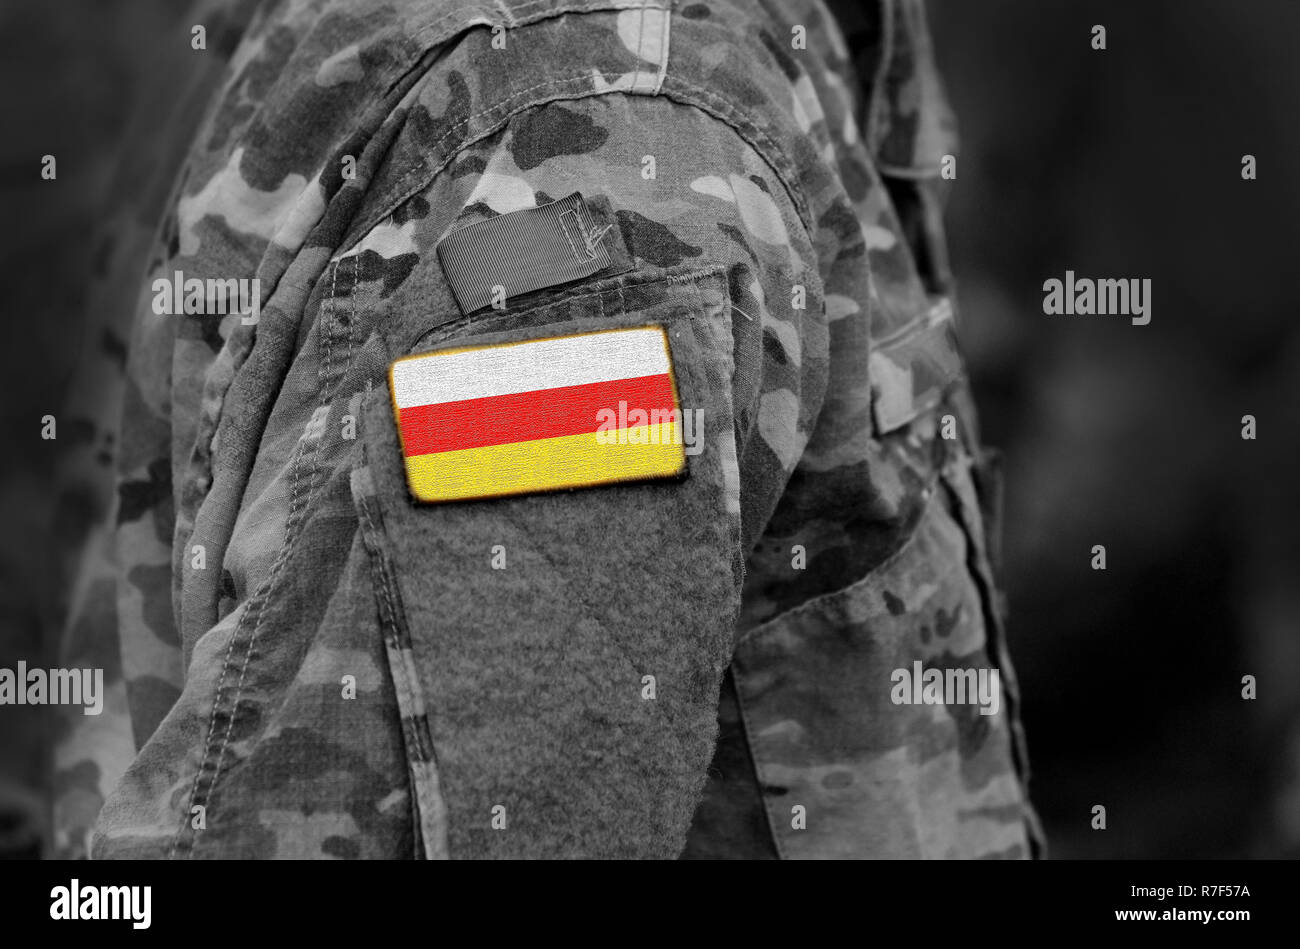 Flag of South Ossetia on soldiers arm. Flag of South Ossetia on military uniforms (collage). - Stock Image